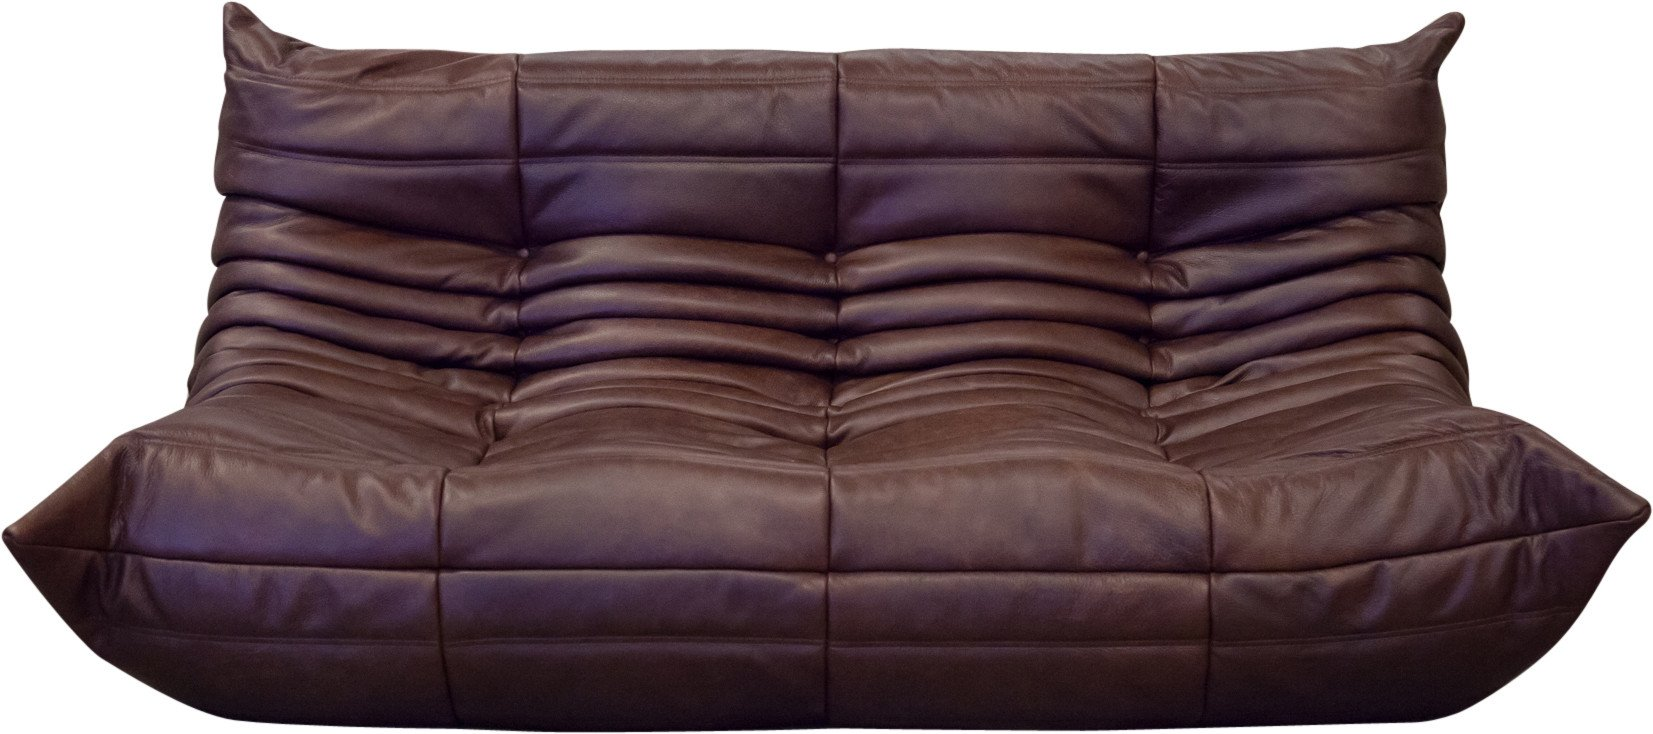 Togo sofa in Brown Leather by M. Ducaroy, Ligne Roset, France, 1970s